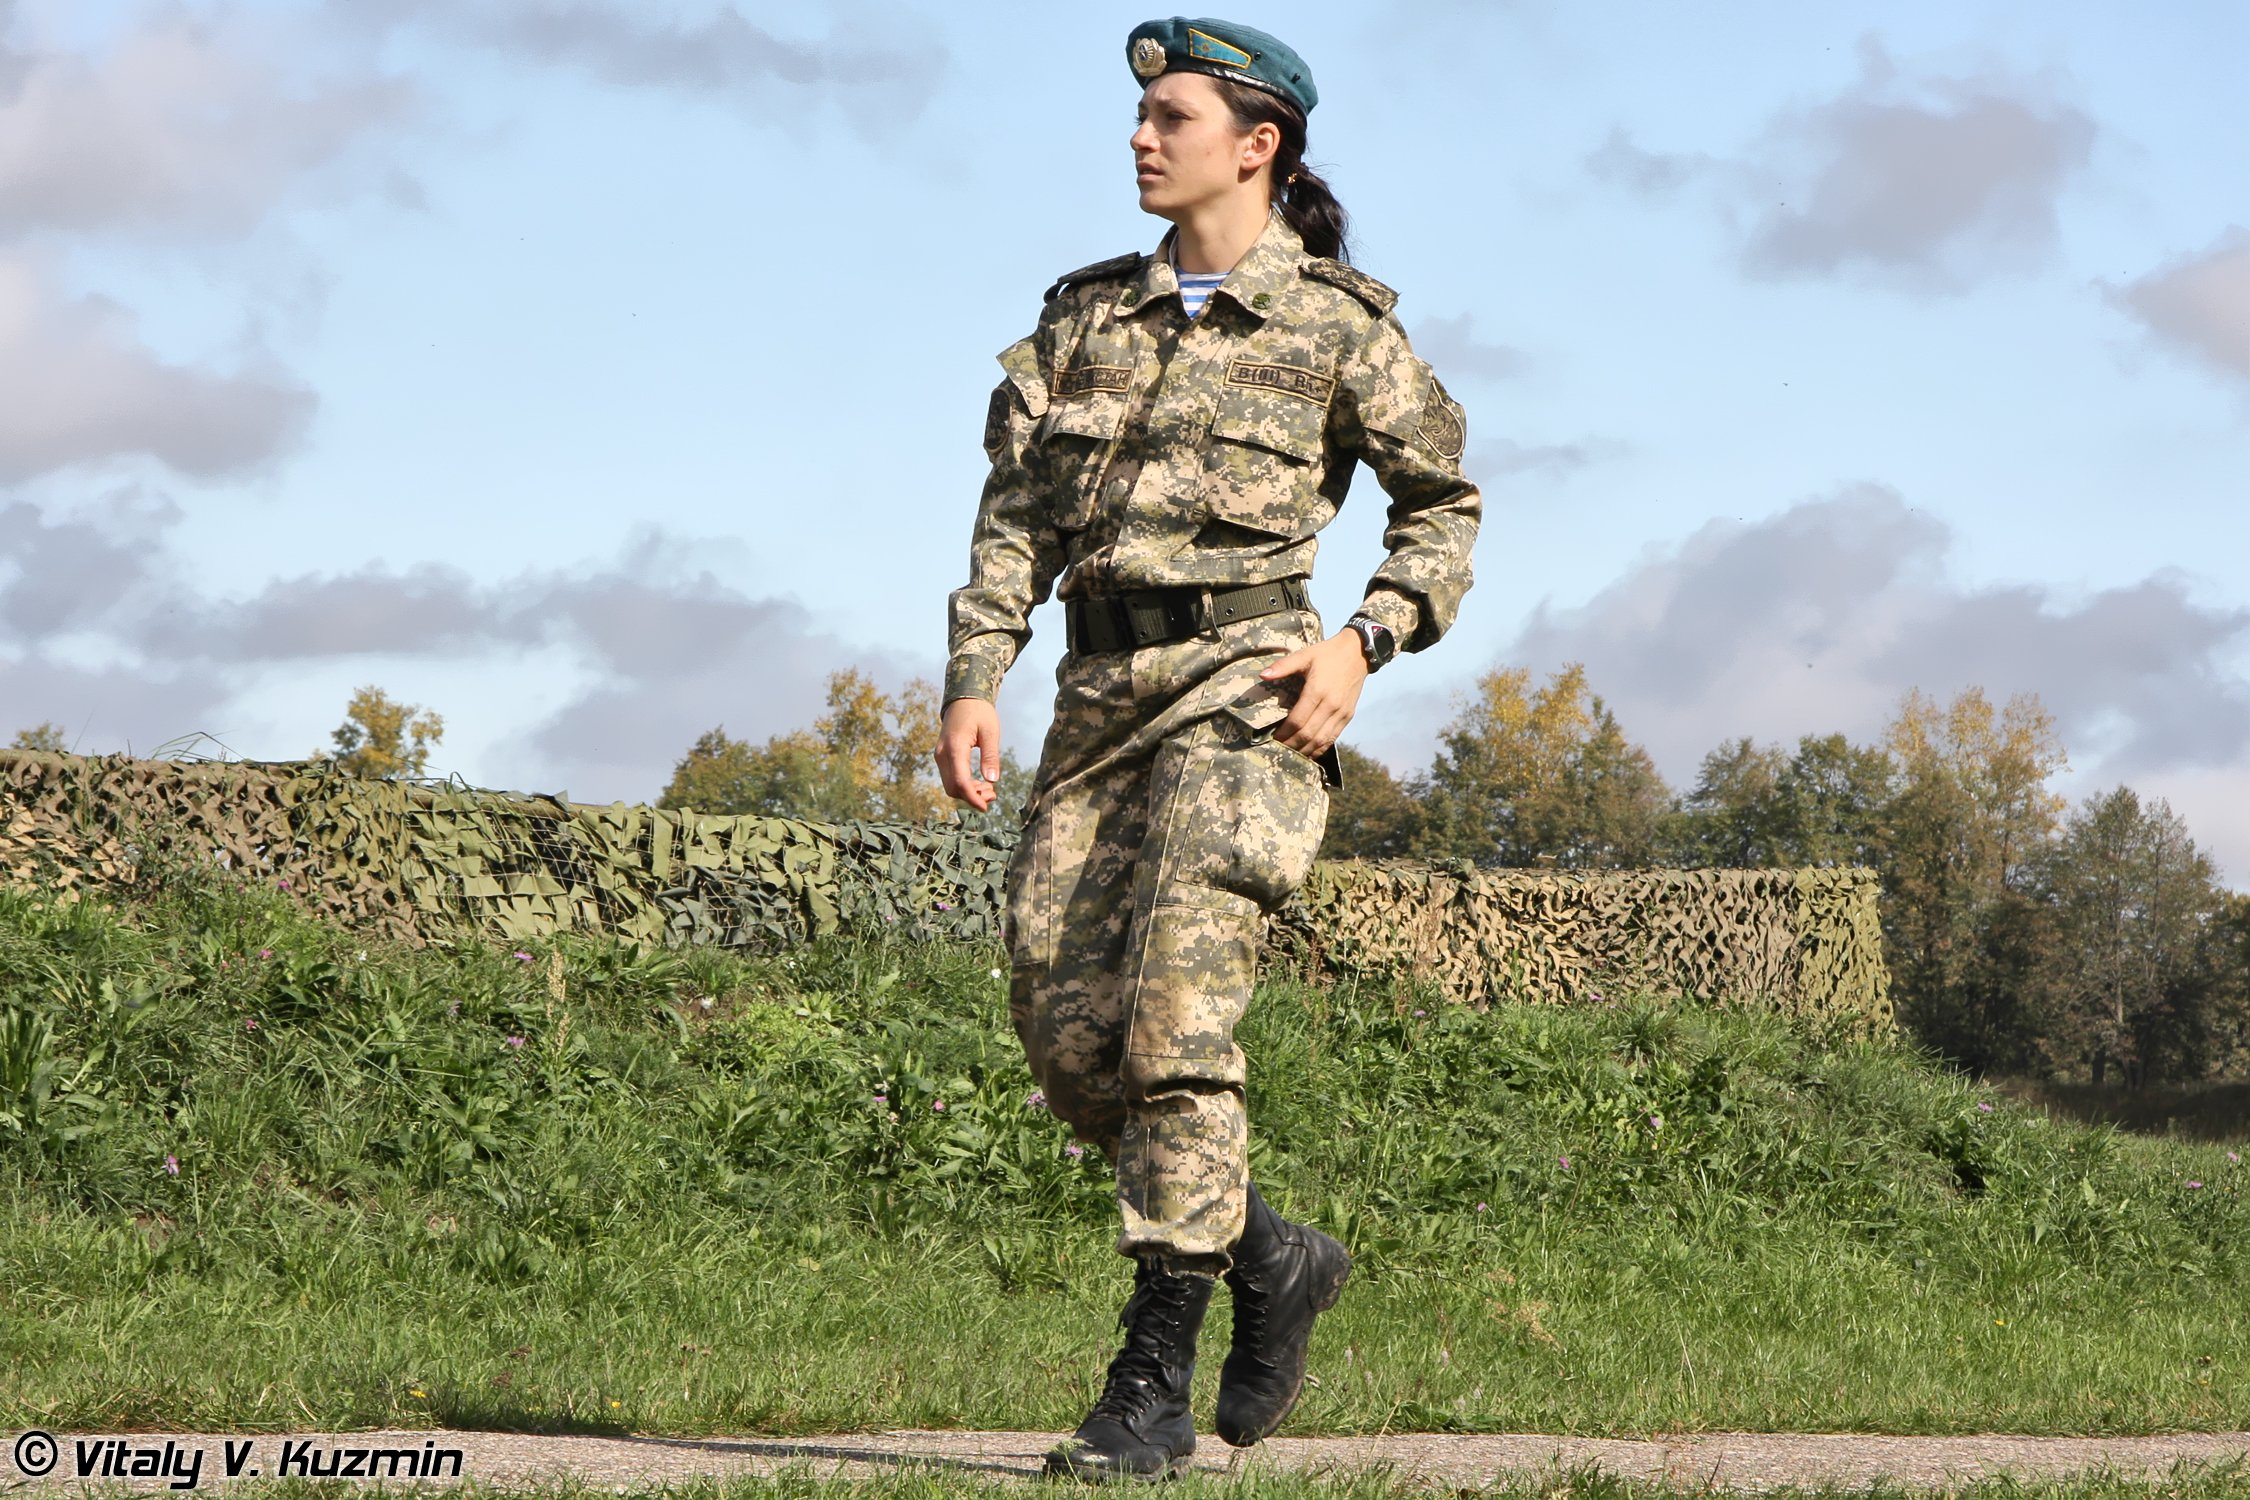 army russian troops woman wallpaper background